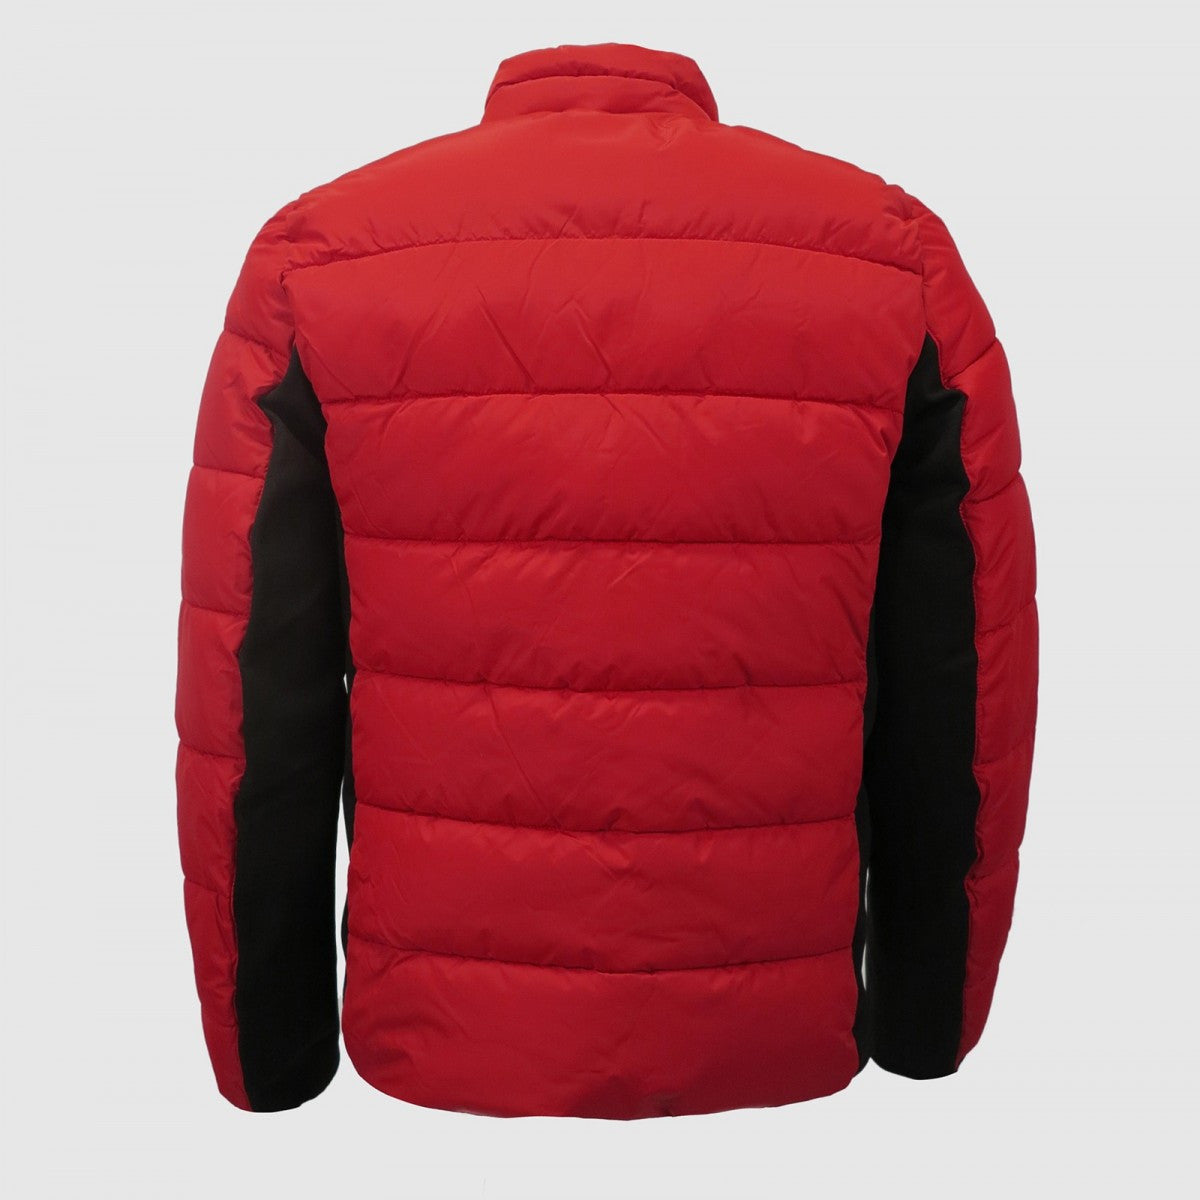 Men's Jacket | Red